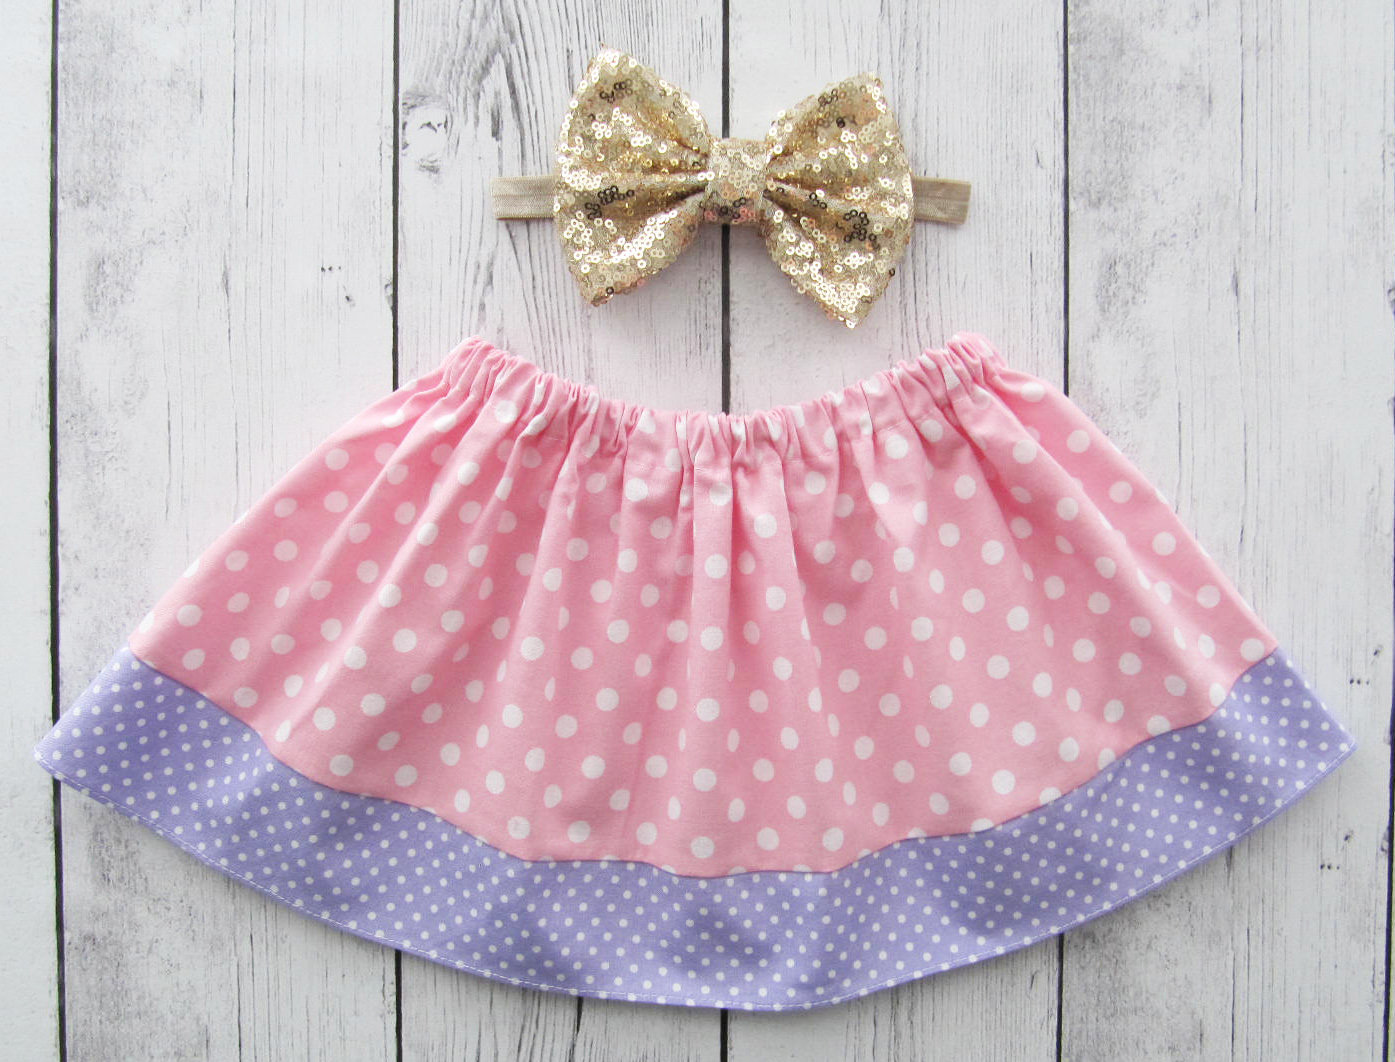 Pink and Purple Dot Skirt for baby girl - pink purple skirt, polka dot skirt, baby girl skirt, purple pink skirt, pink polka dot skirt